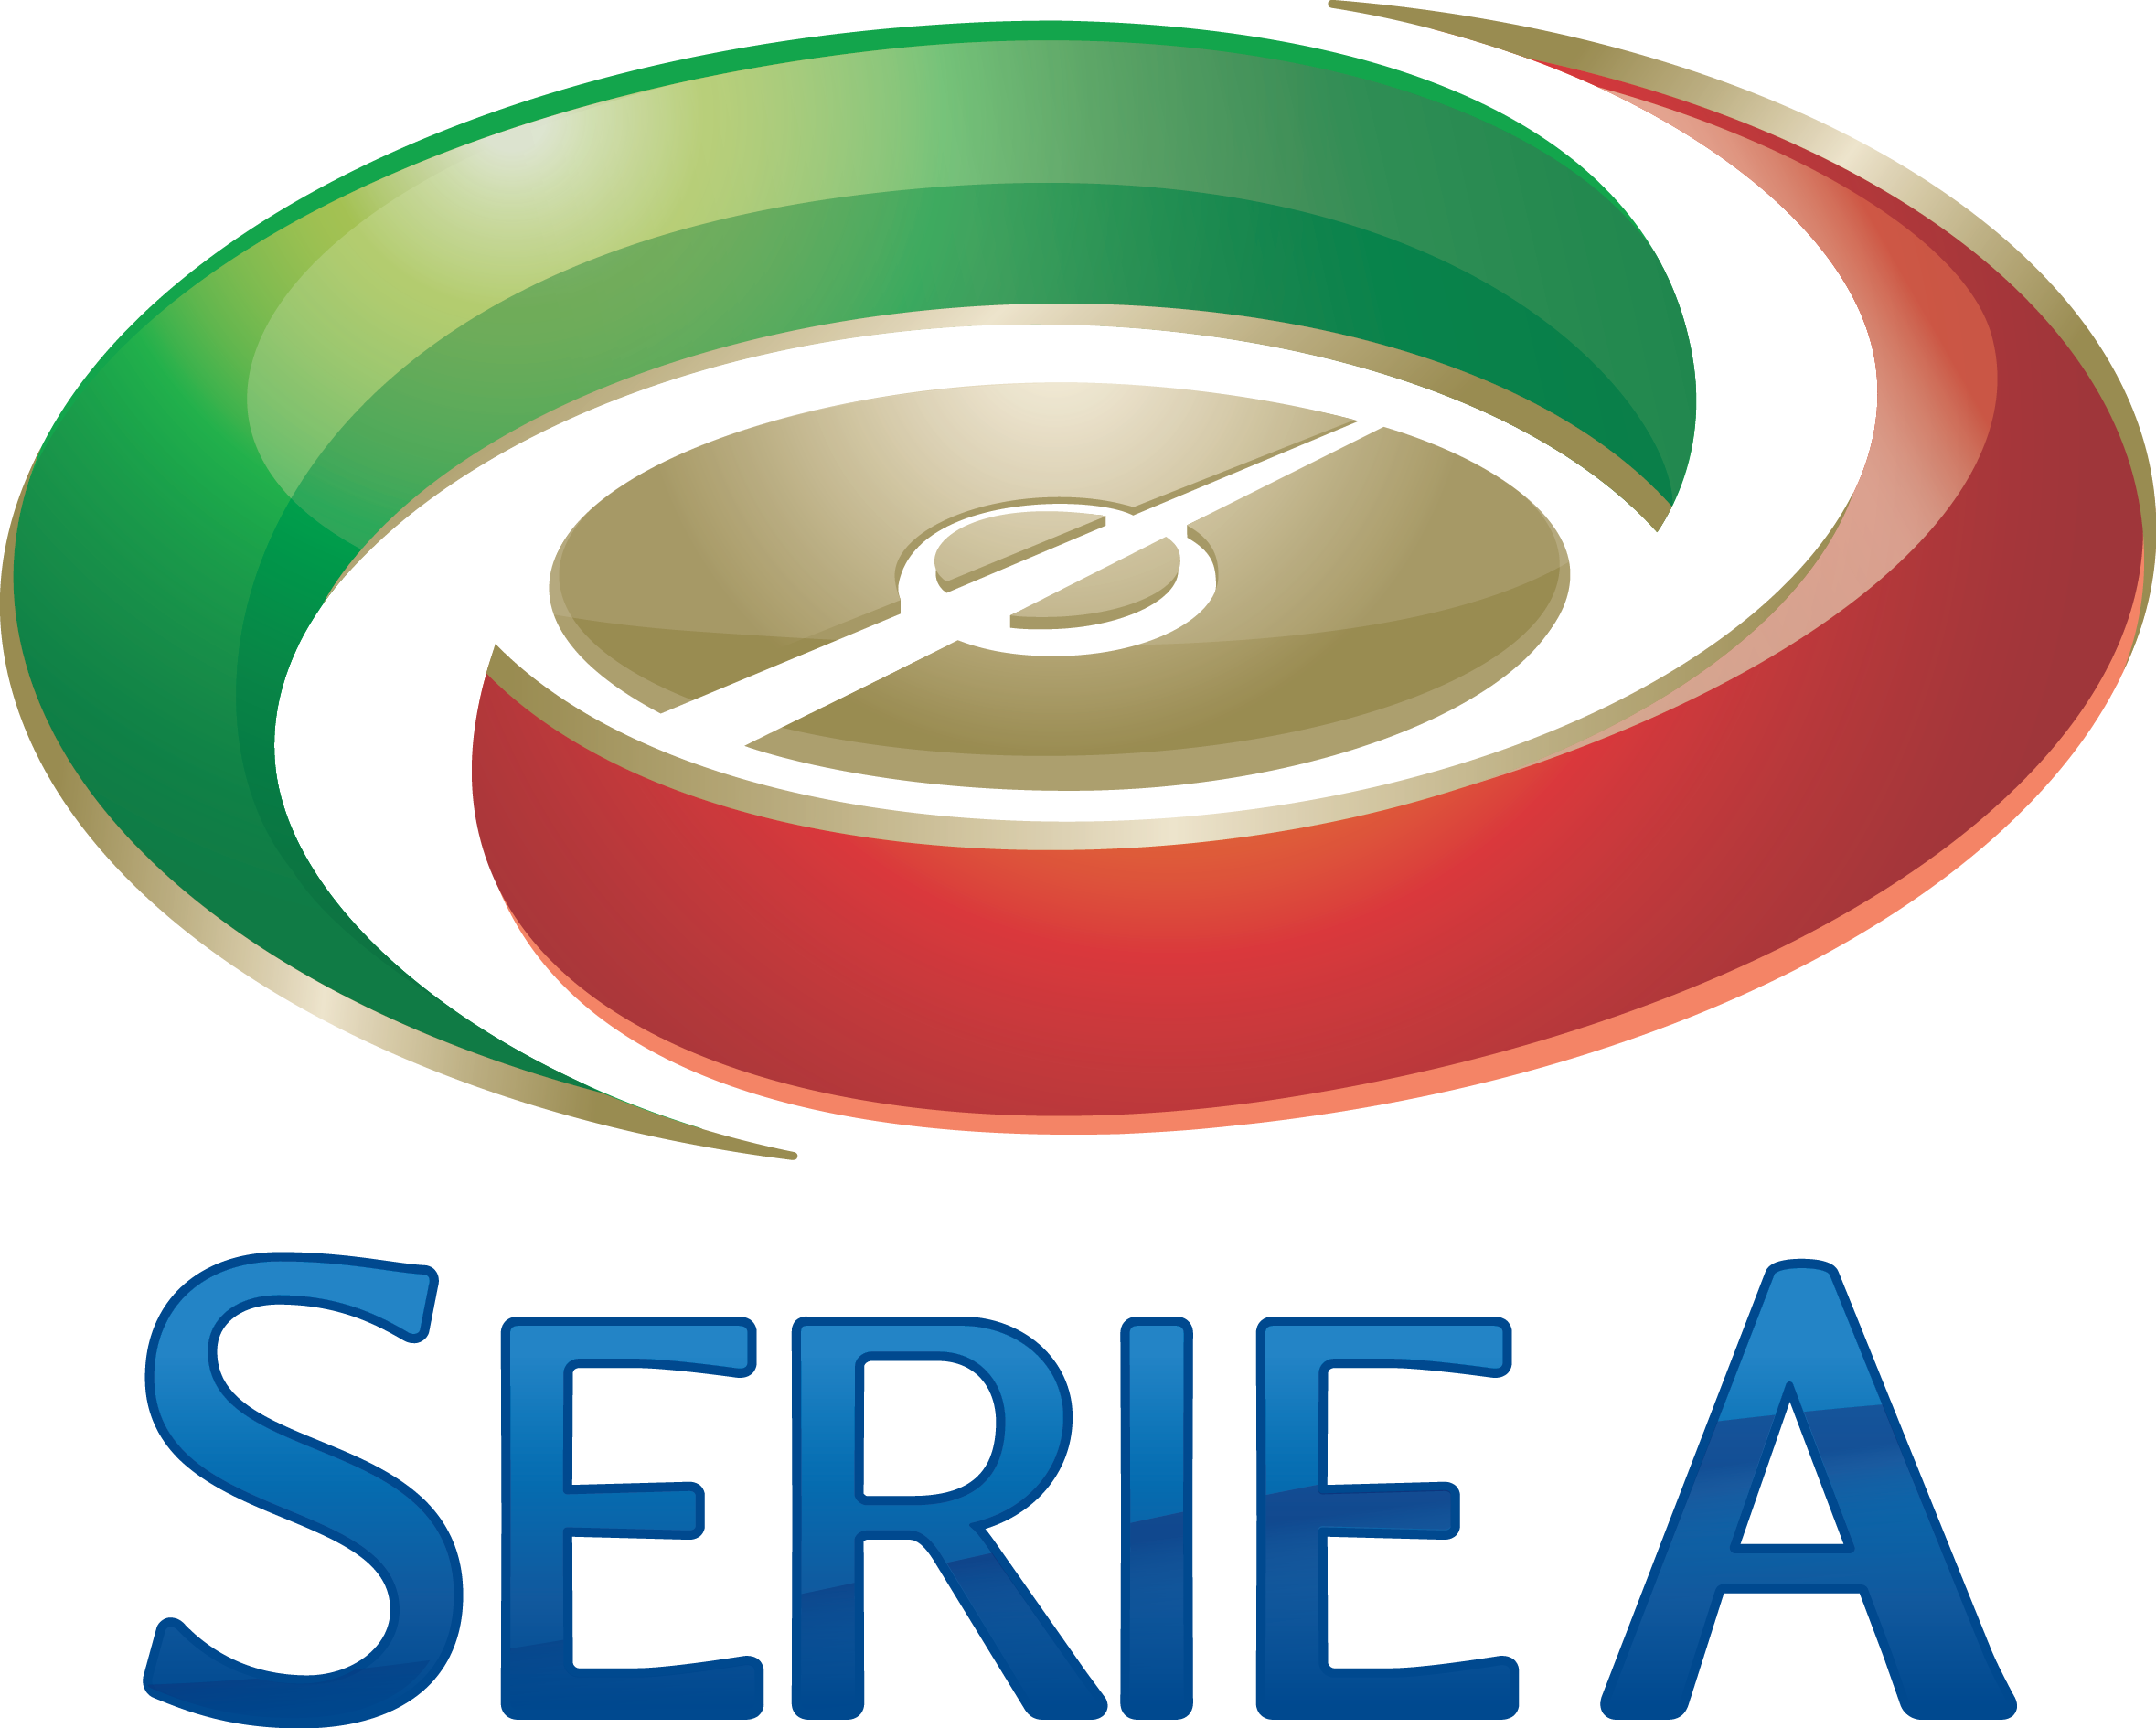 Chievo vs Atalanta 1-1 All goals and highlights 24/05/2015